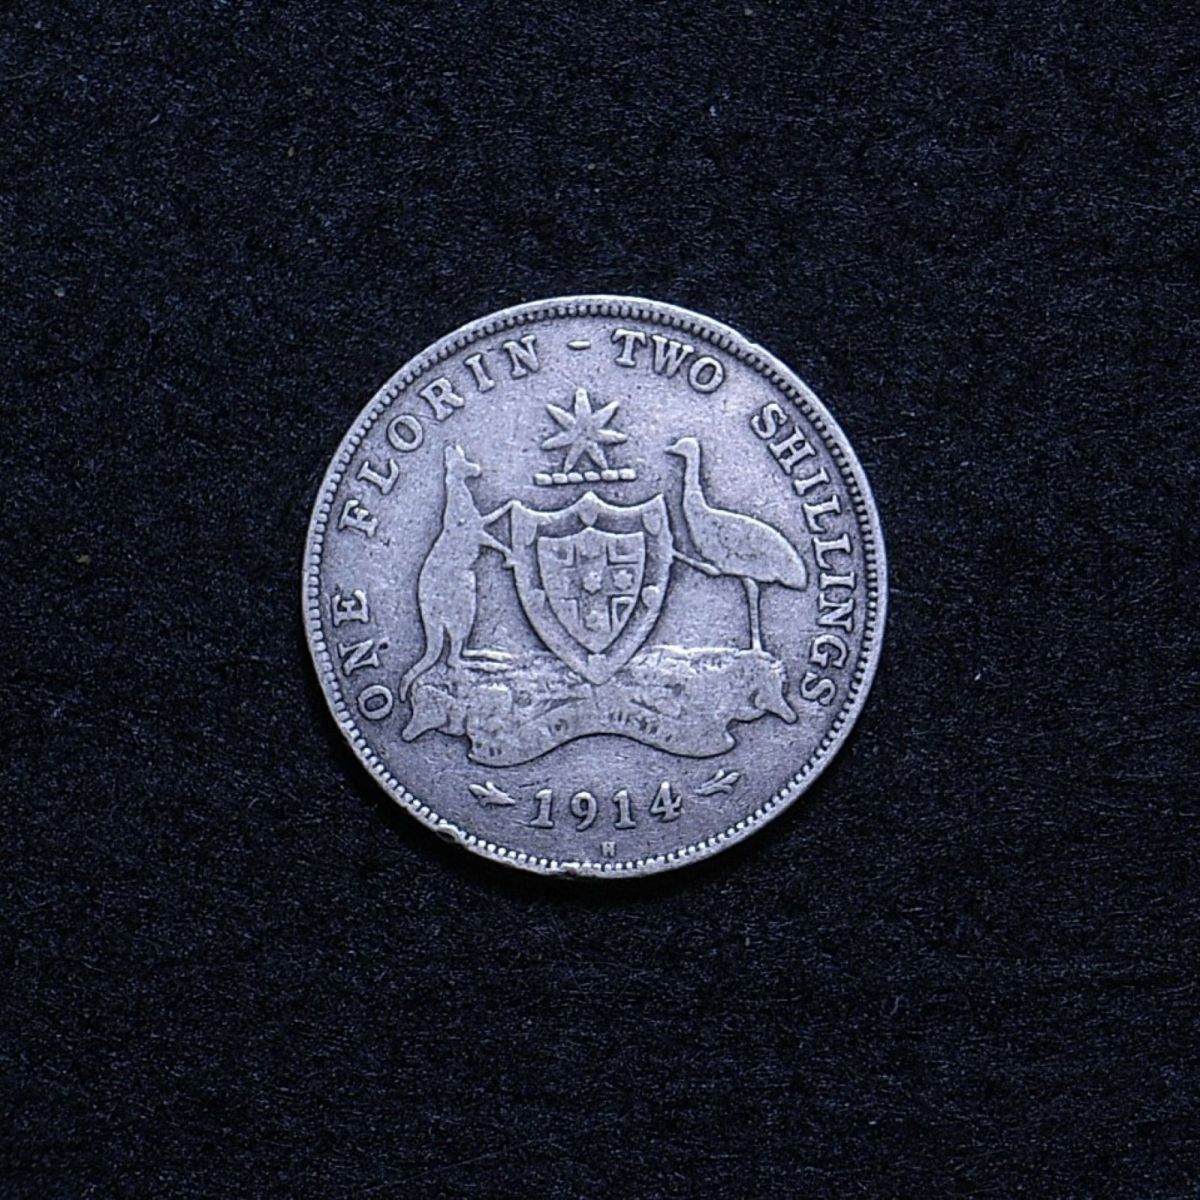 Aus Florin 1914H reverse showing overall appearance